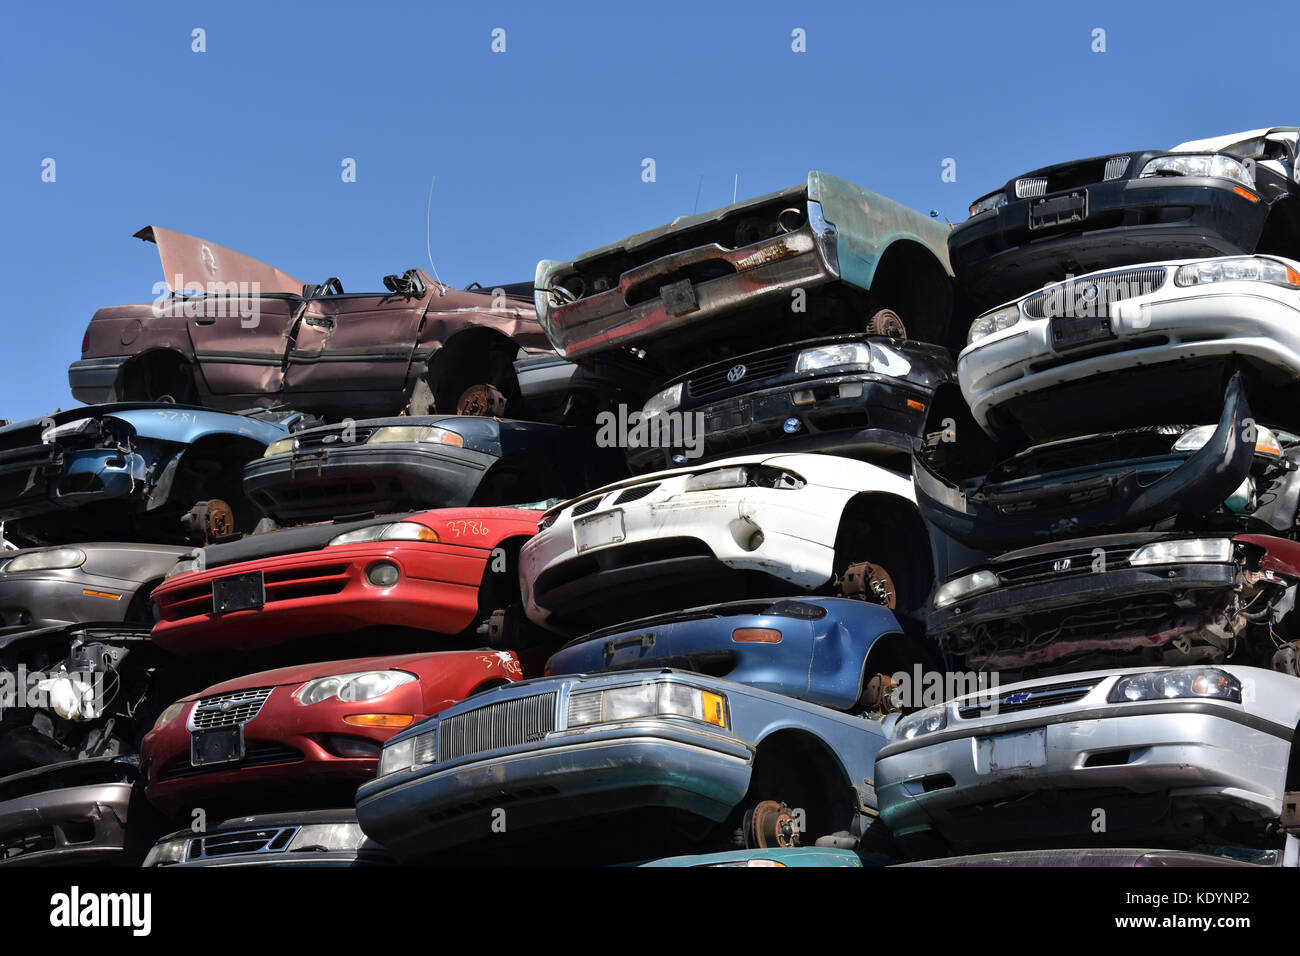 Cars piled high at a junk yard with many cars that are crushed and damaged. - Stock Image